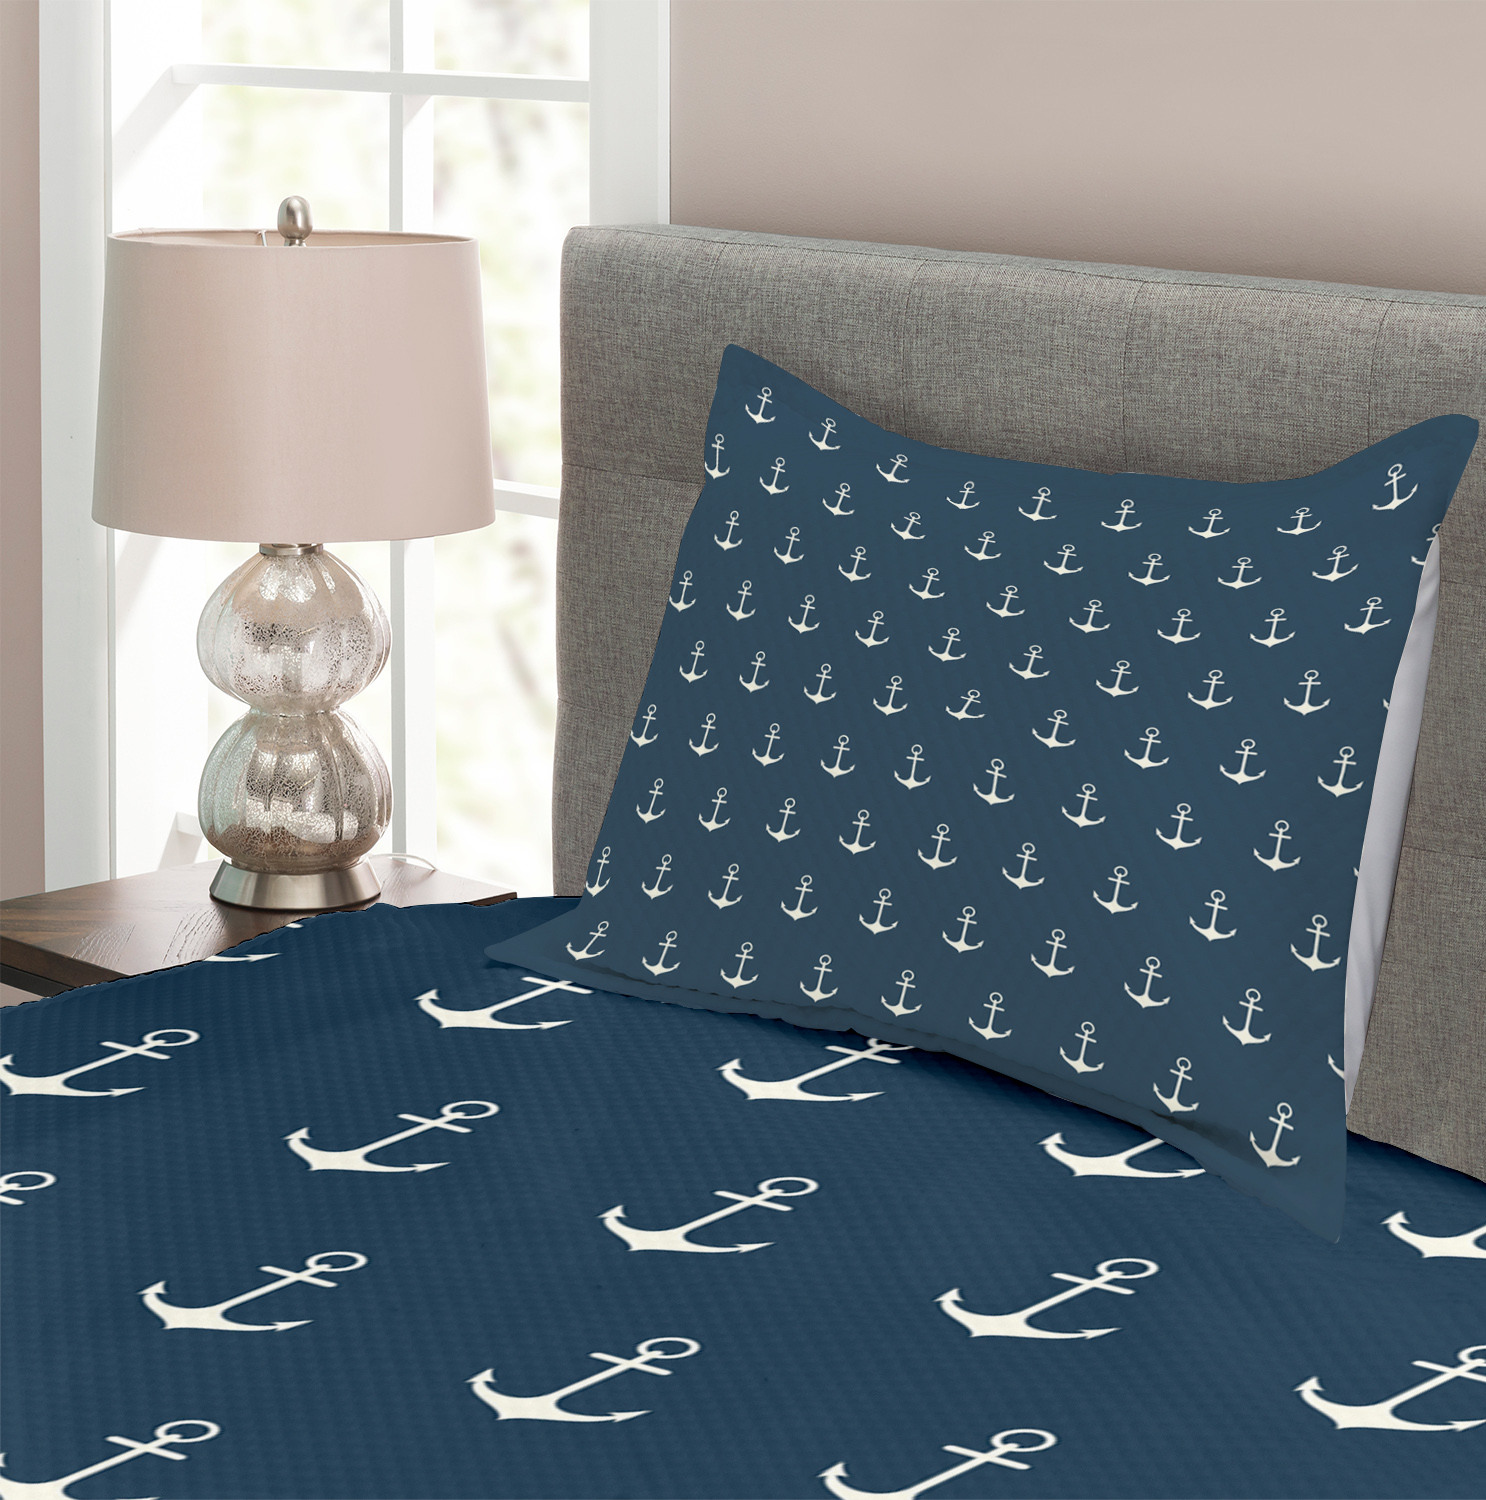 Anchor Quilted Bedspread /& Pillow Shams Set Nautical Simple Classic Print